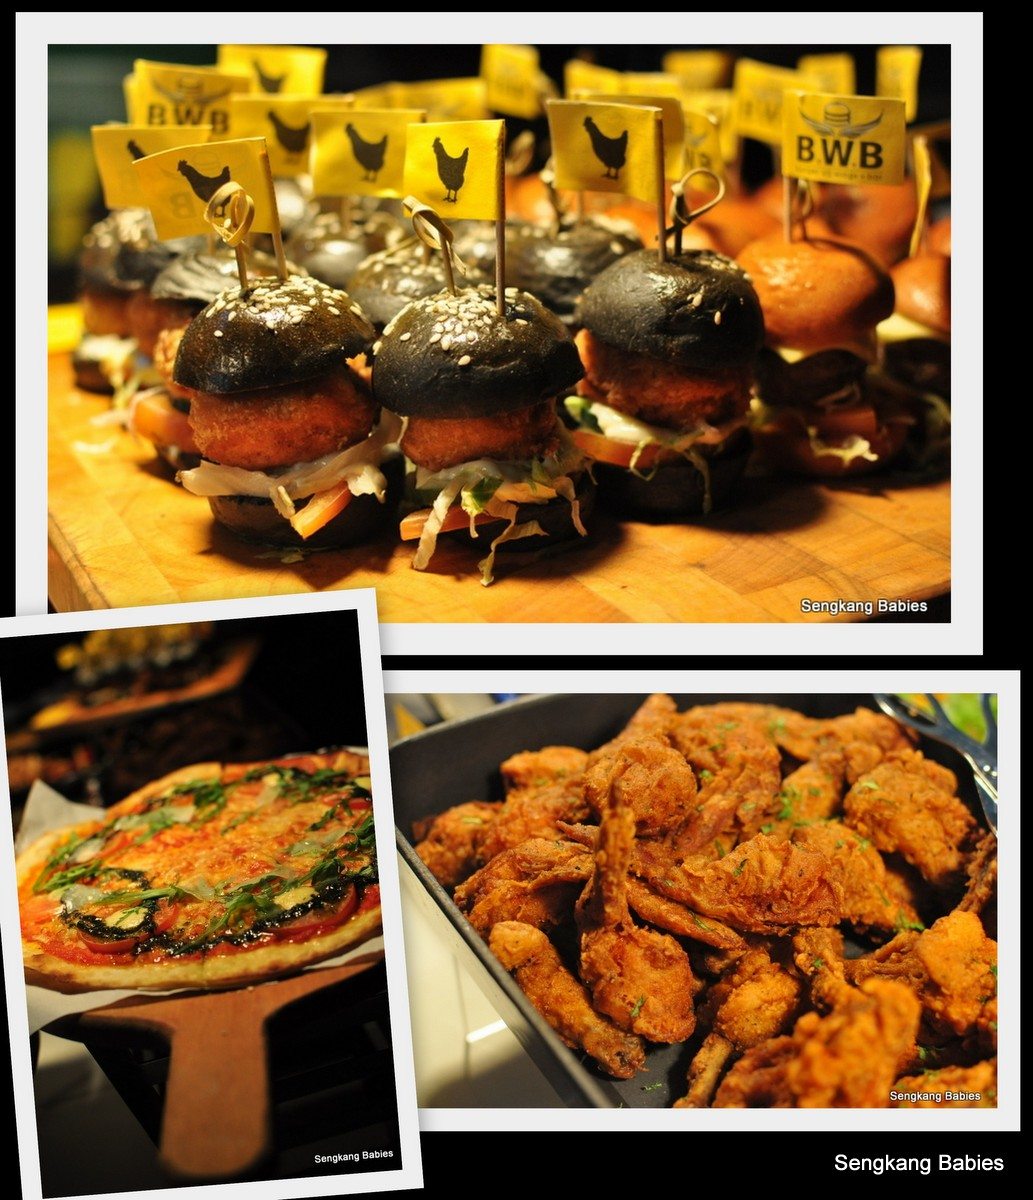 BWB Burger Wings Bar